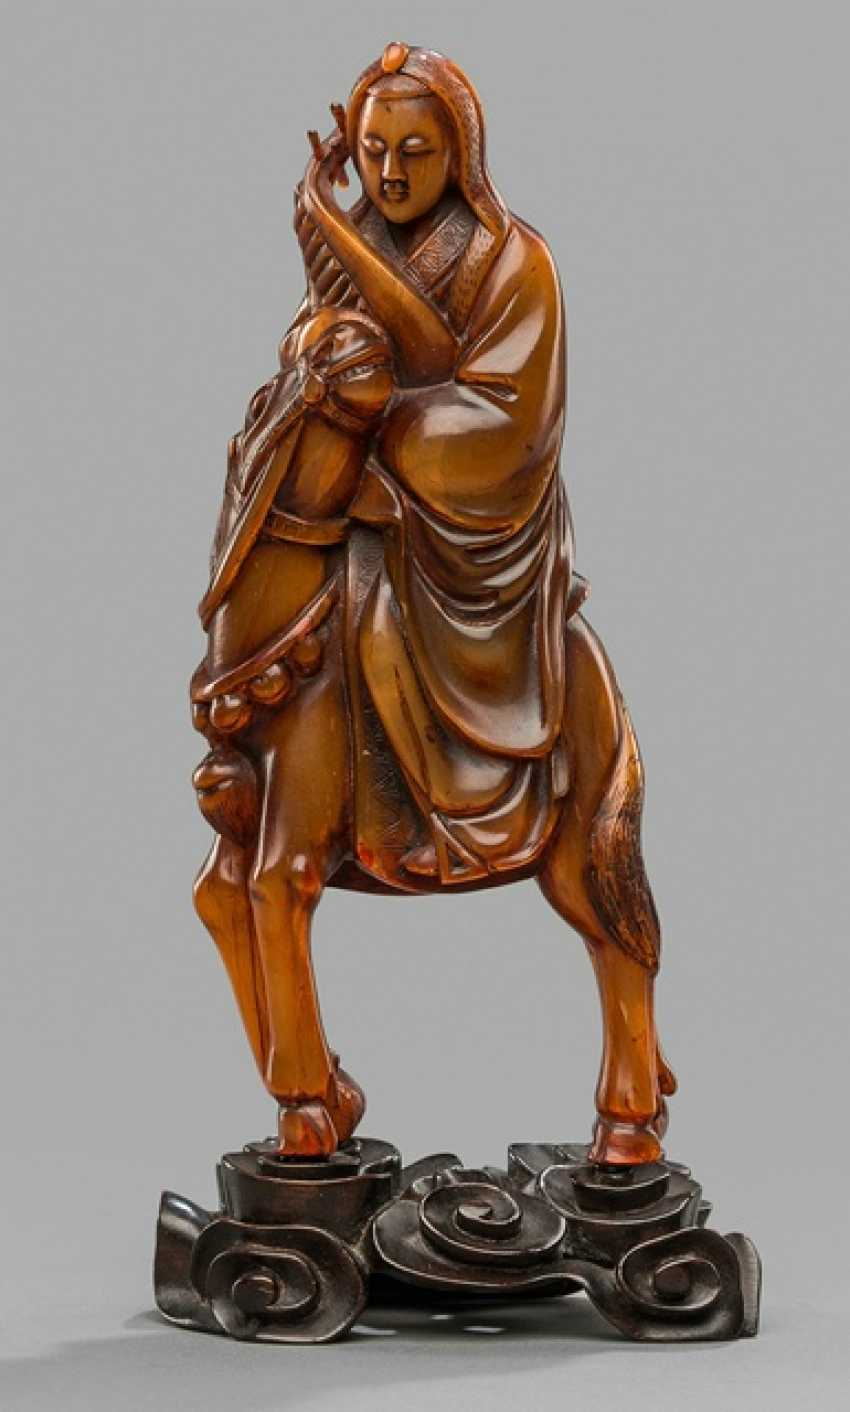 Carving of the lady Wang Zhaojun made of Buffalo horn on a horse, riding, wooden stand - photo 1